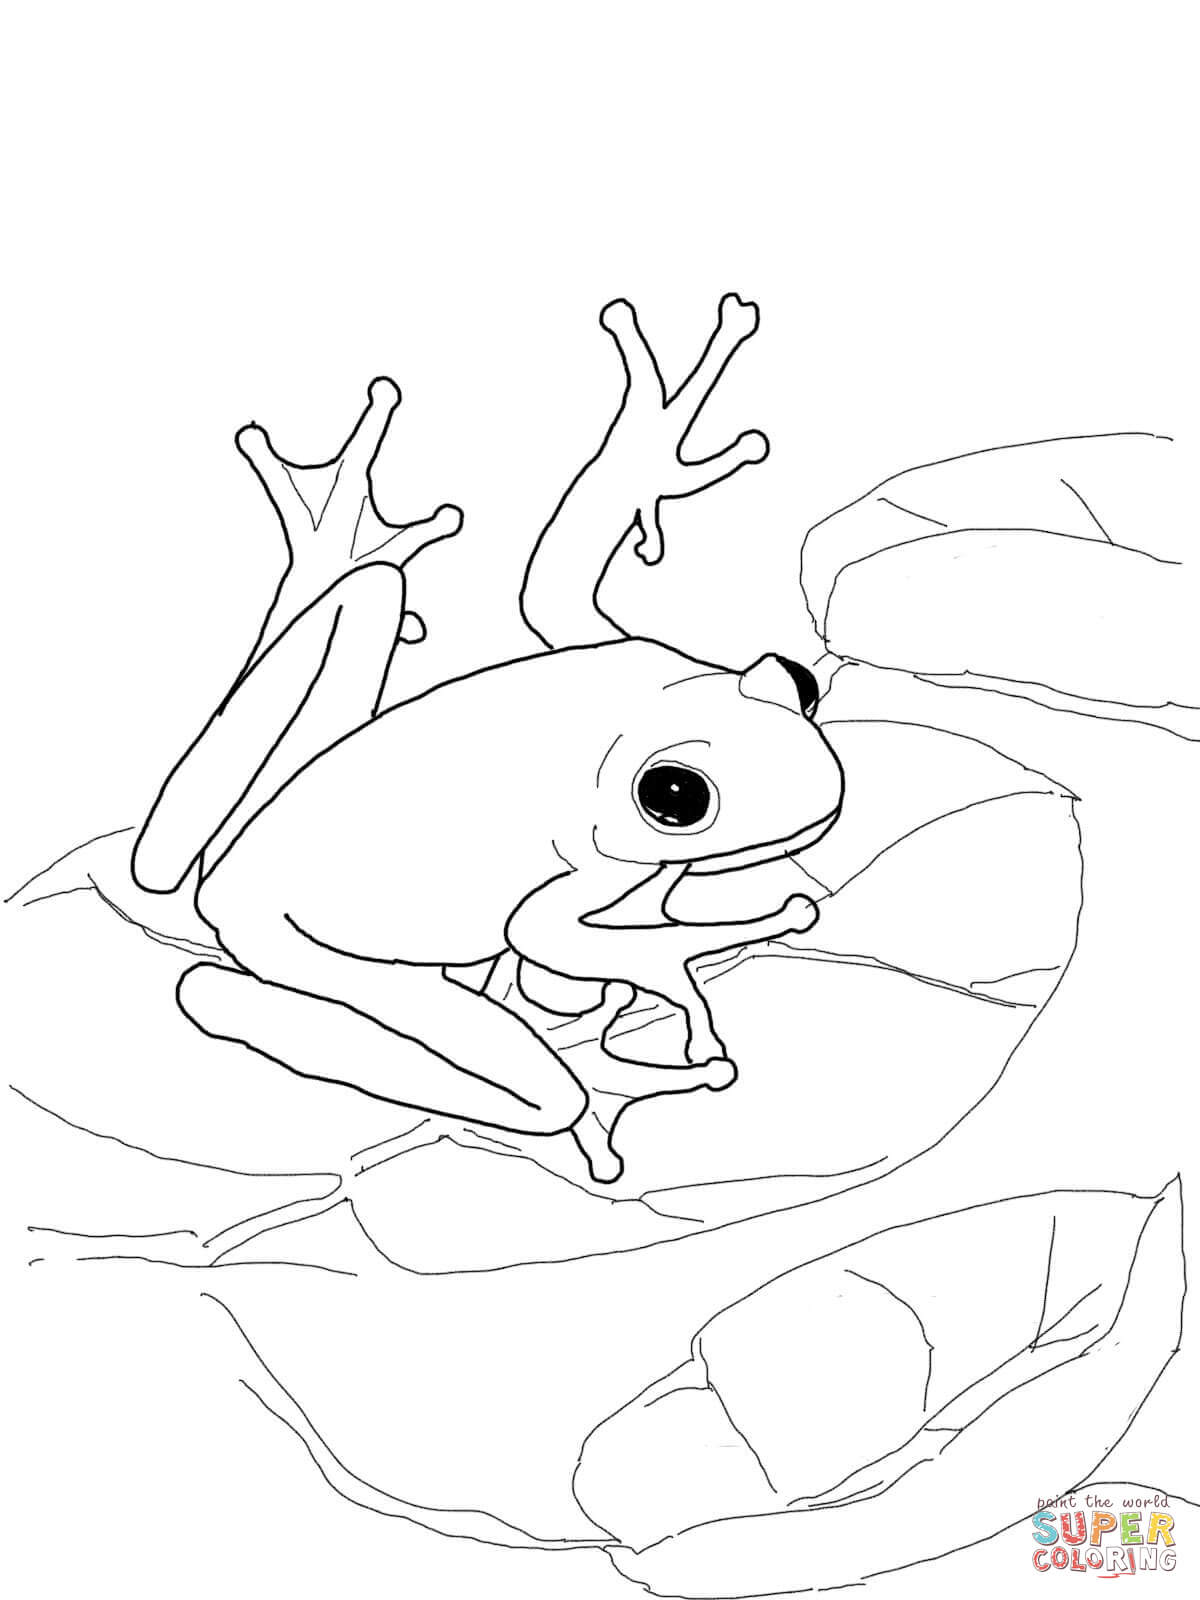 Tree Frog coloring #4, Download drawings